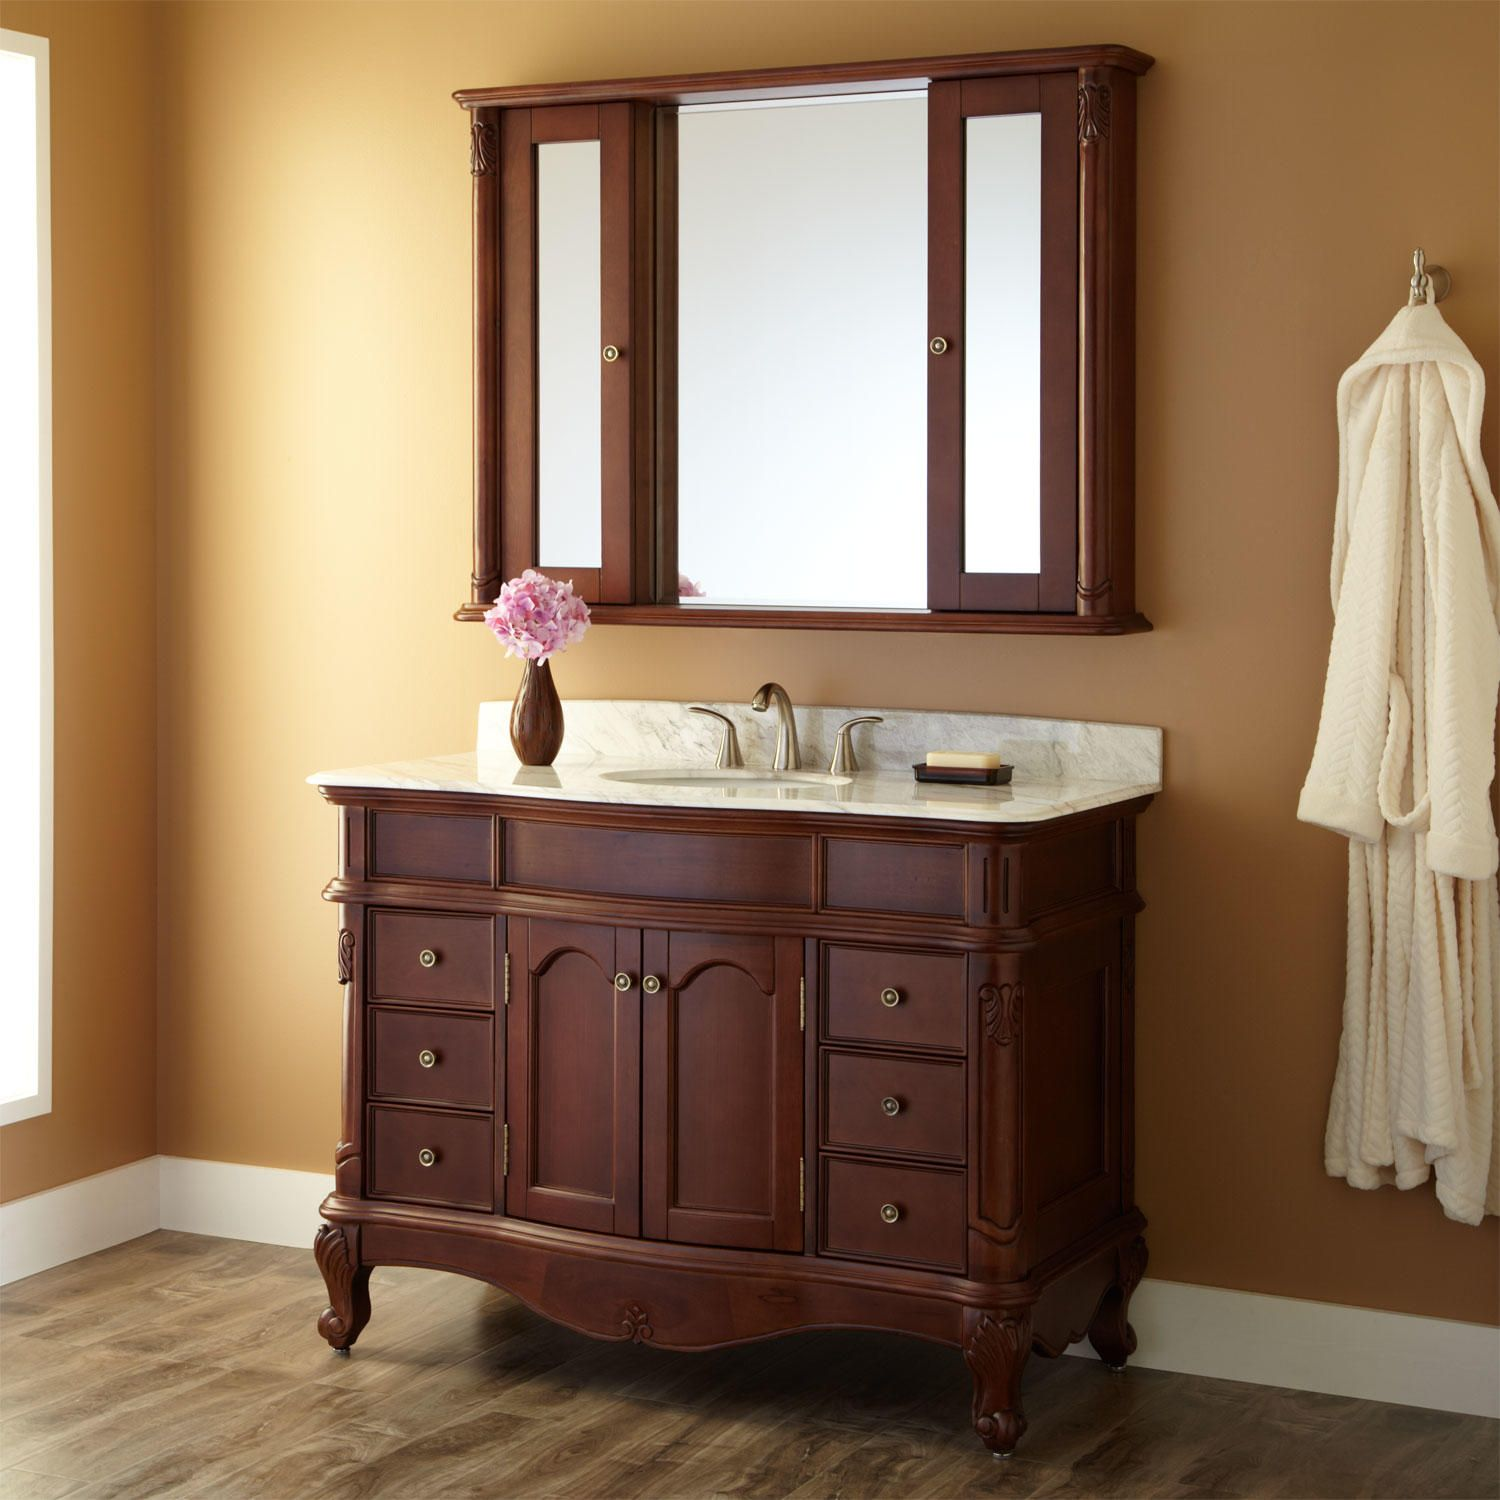 48 Sedwick Brown Cherry Vanity Carrara Marble Top And Medicine Cabinet